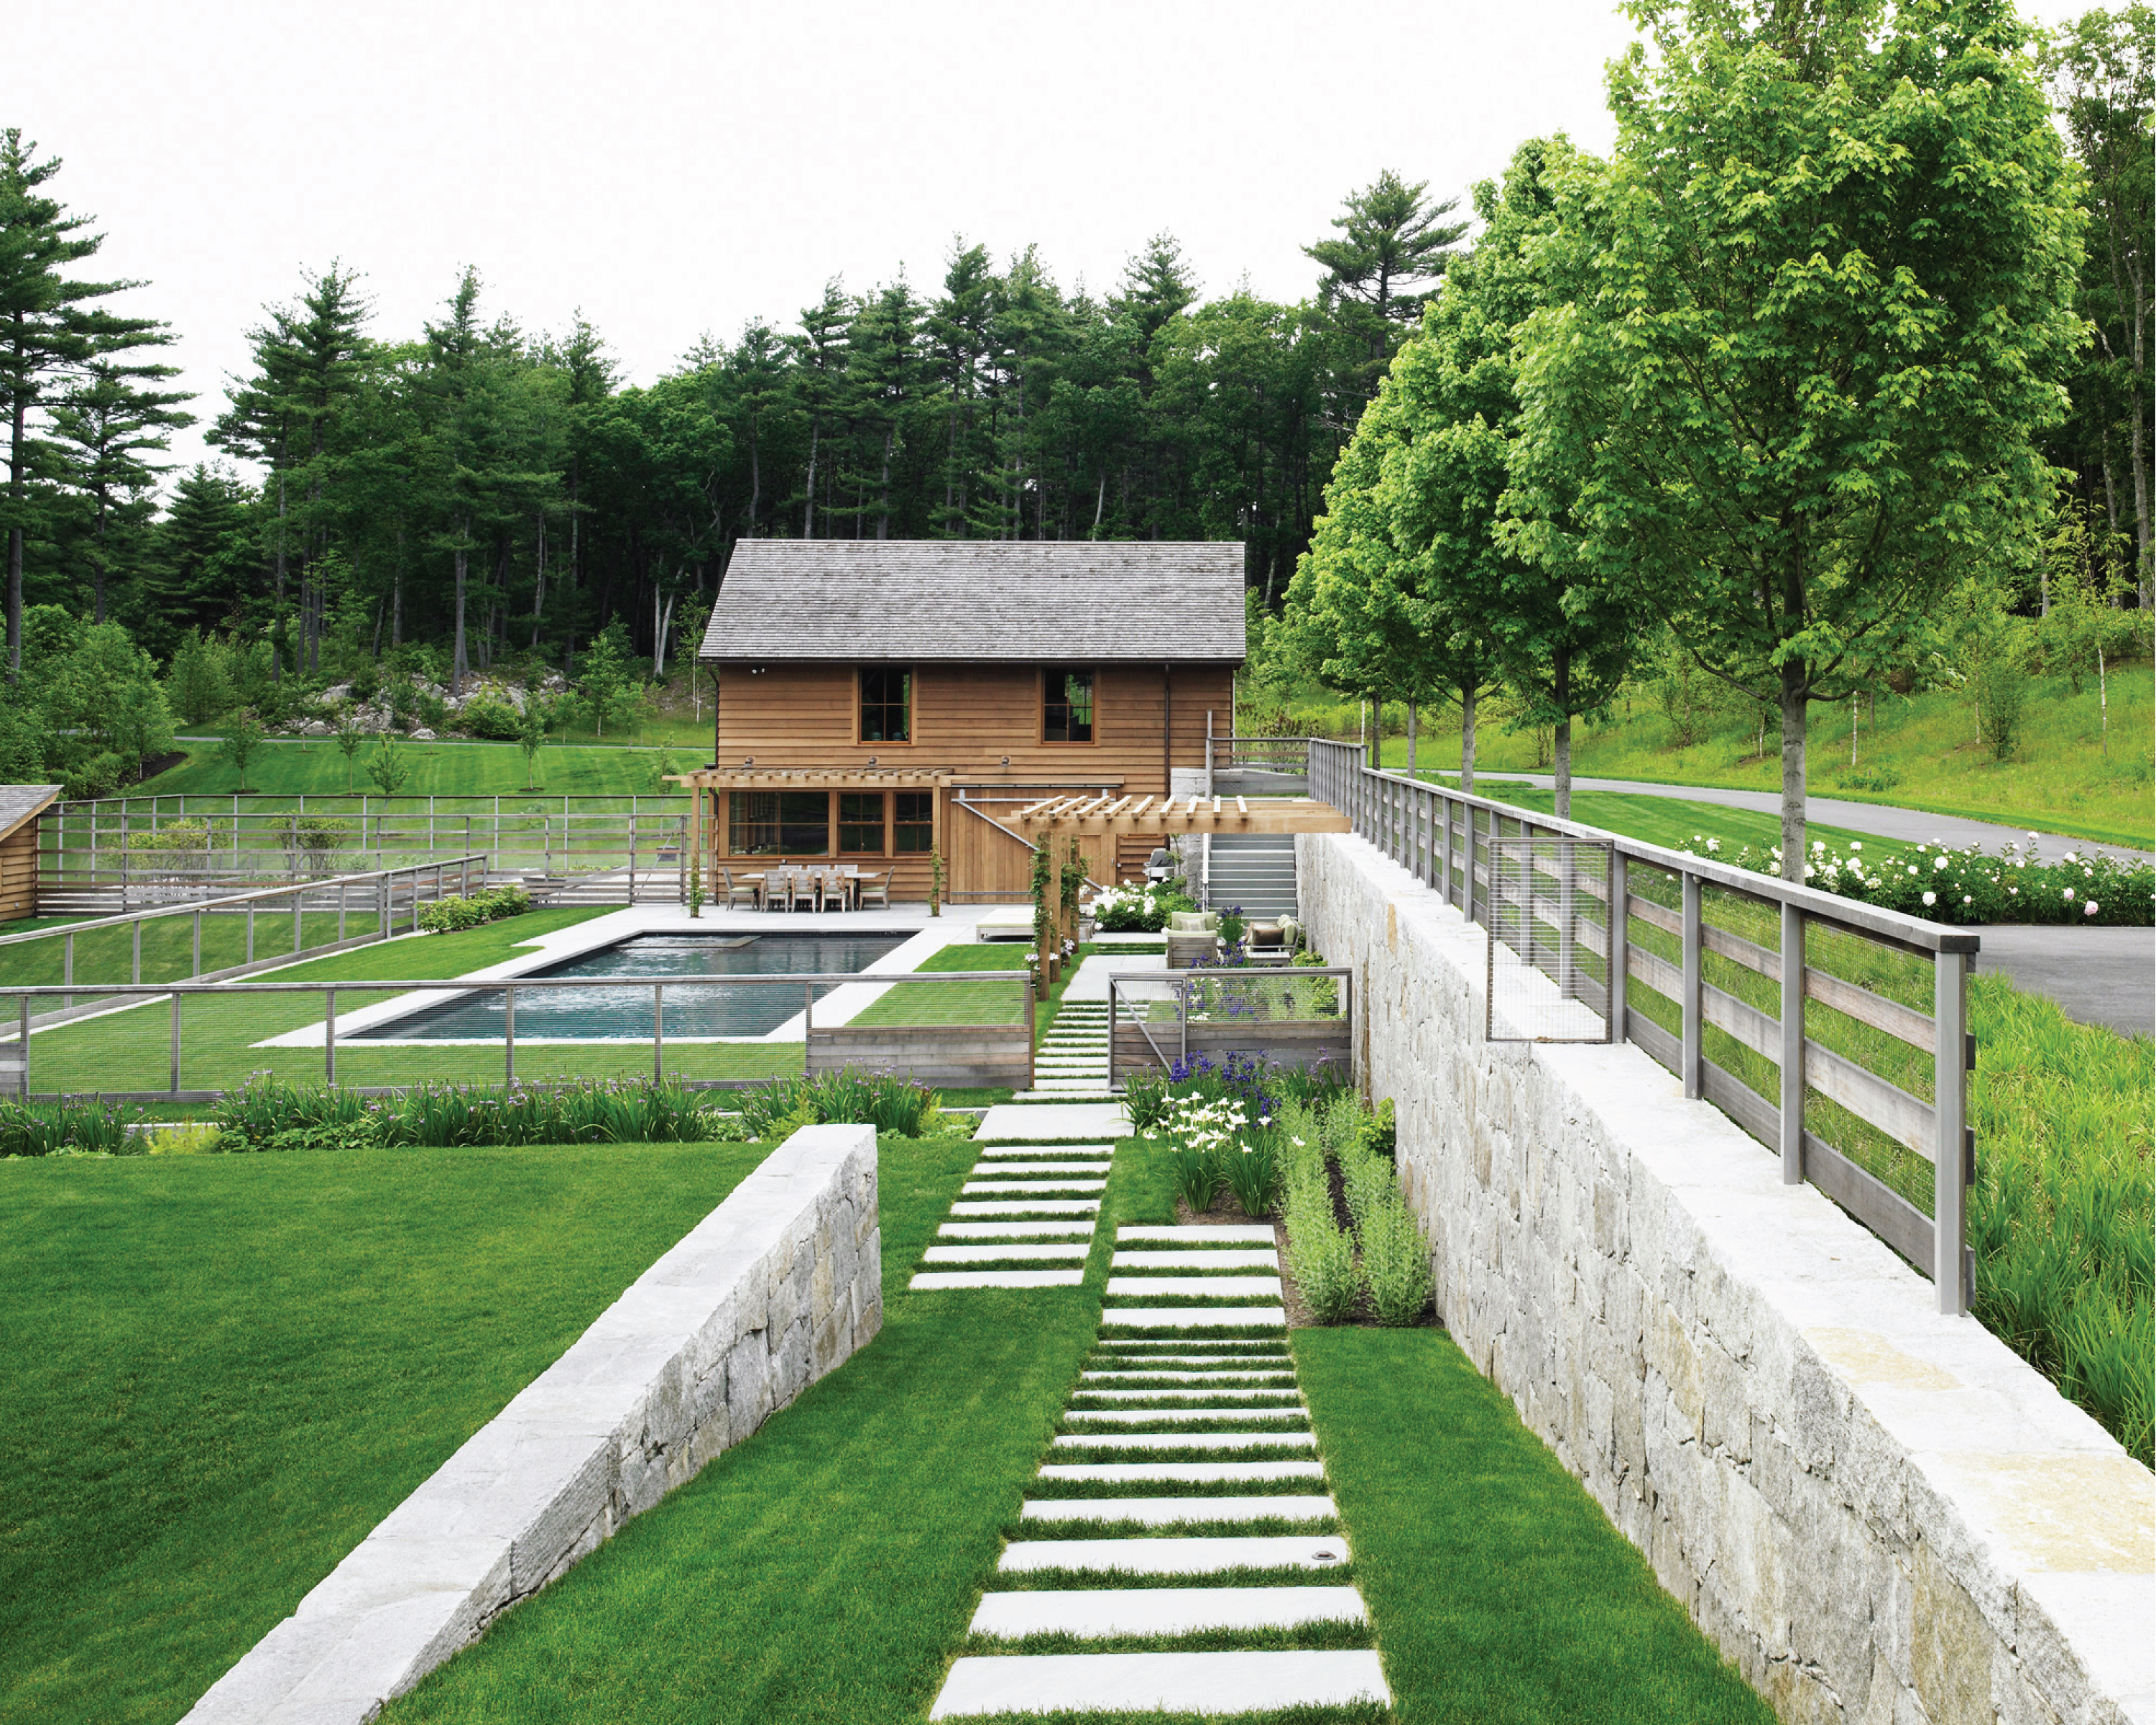 Terrace Kitchen Garden Asla 2012 Professional Awards Maple Hill Residence